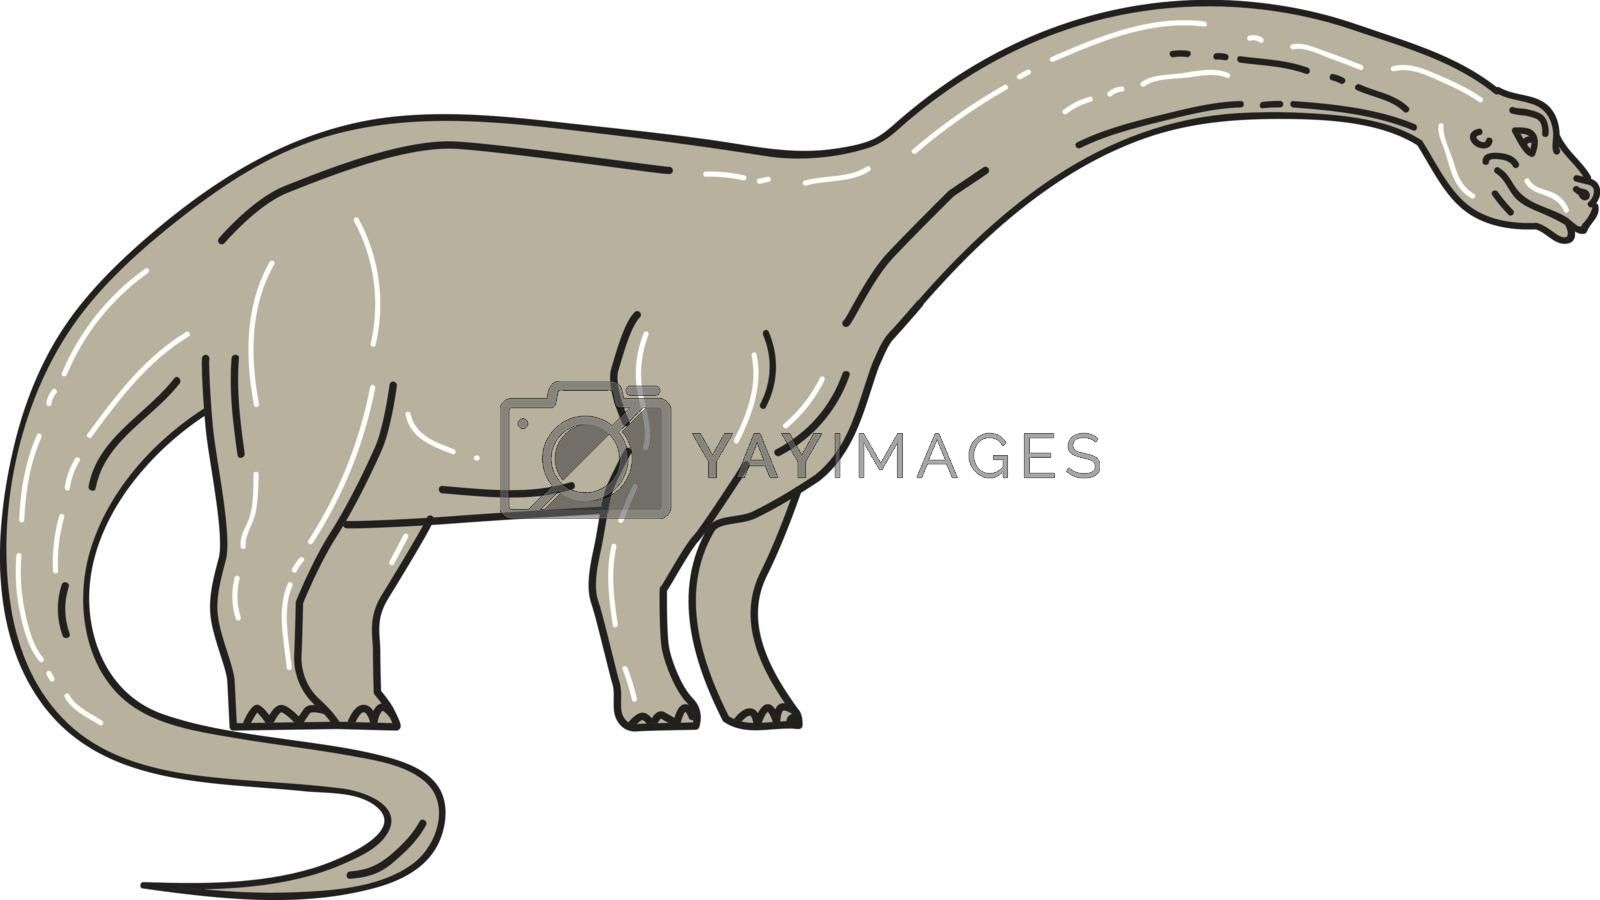 """Illustration of a Brontosaurus meaning """"thunder lizard, a genus of gigantic quadruped sauropod dinosaurs that lived in the late Jurrasic epoch looking down viewed from the side set on isolated white background."""